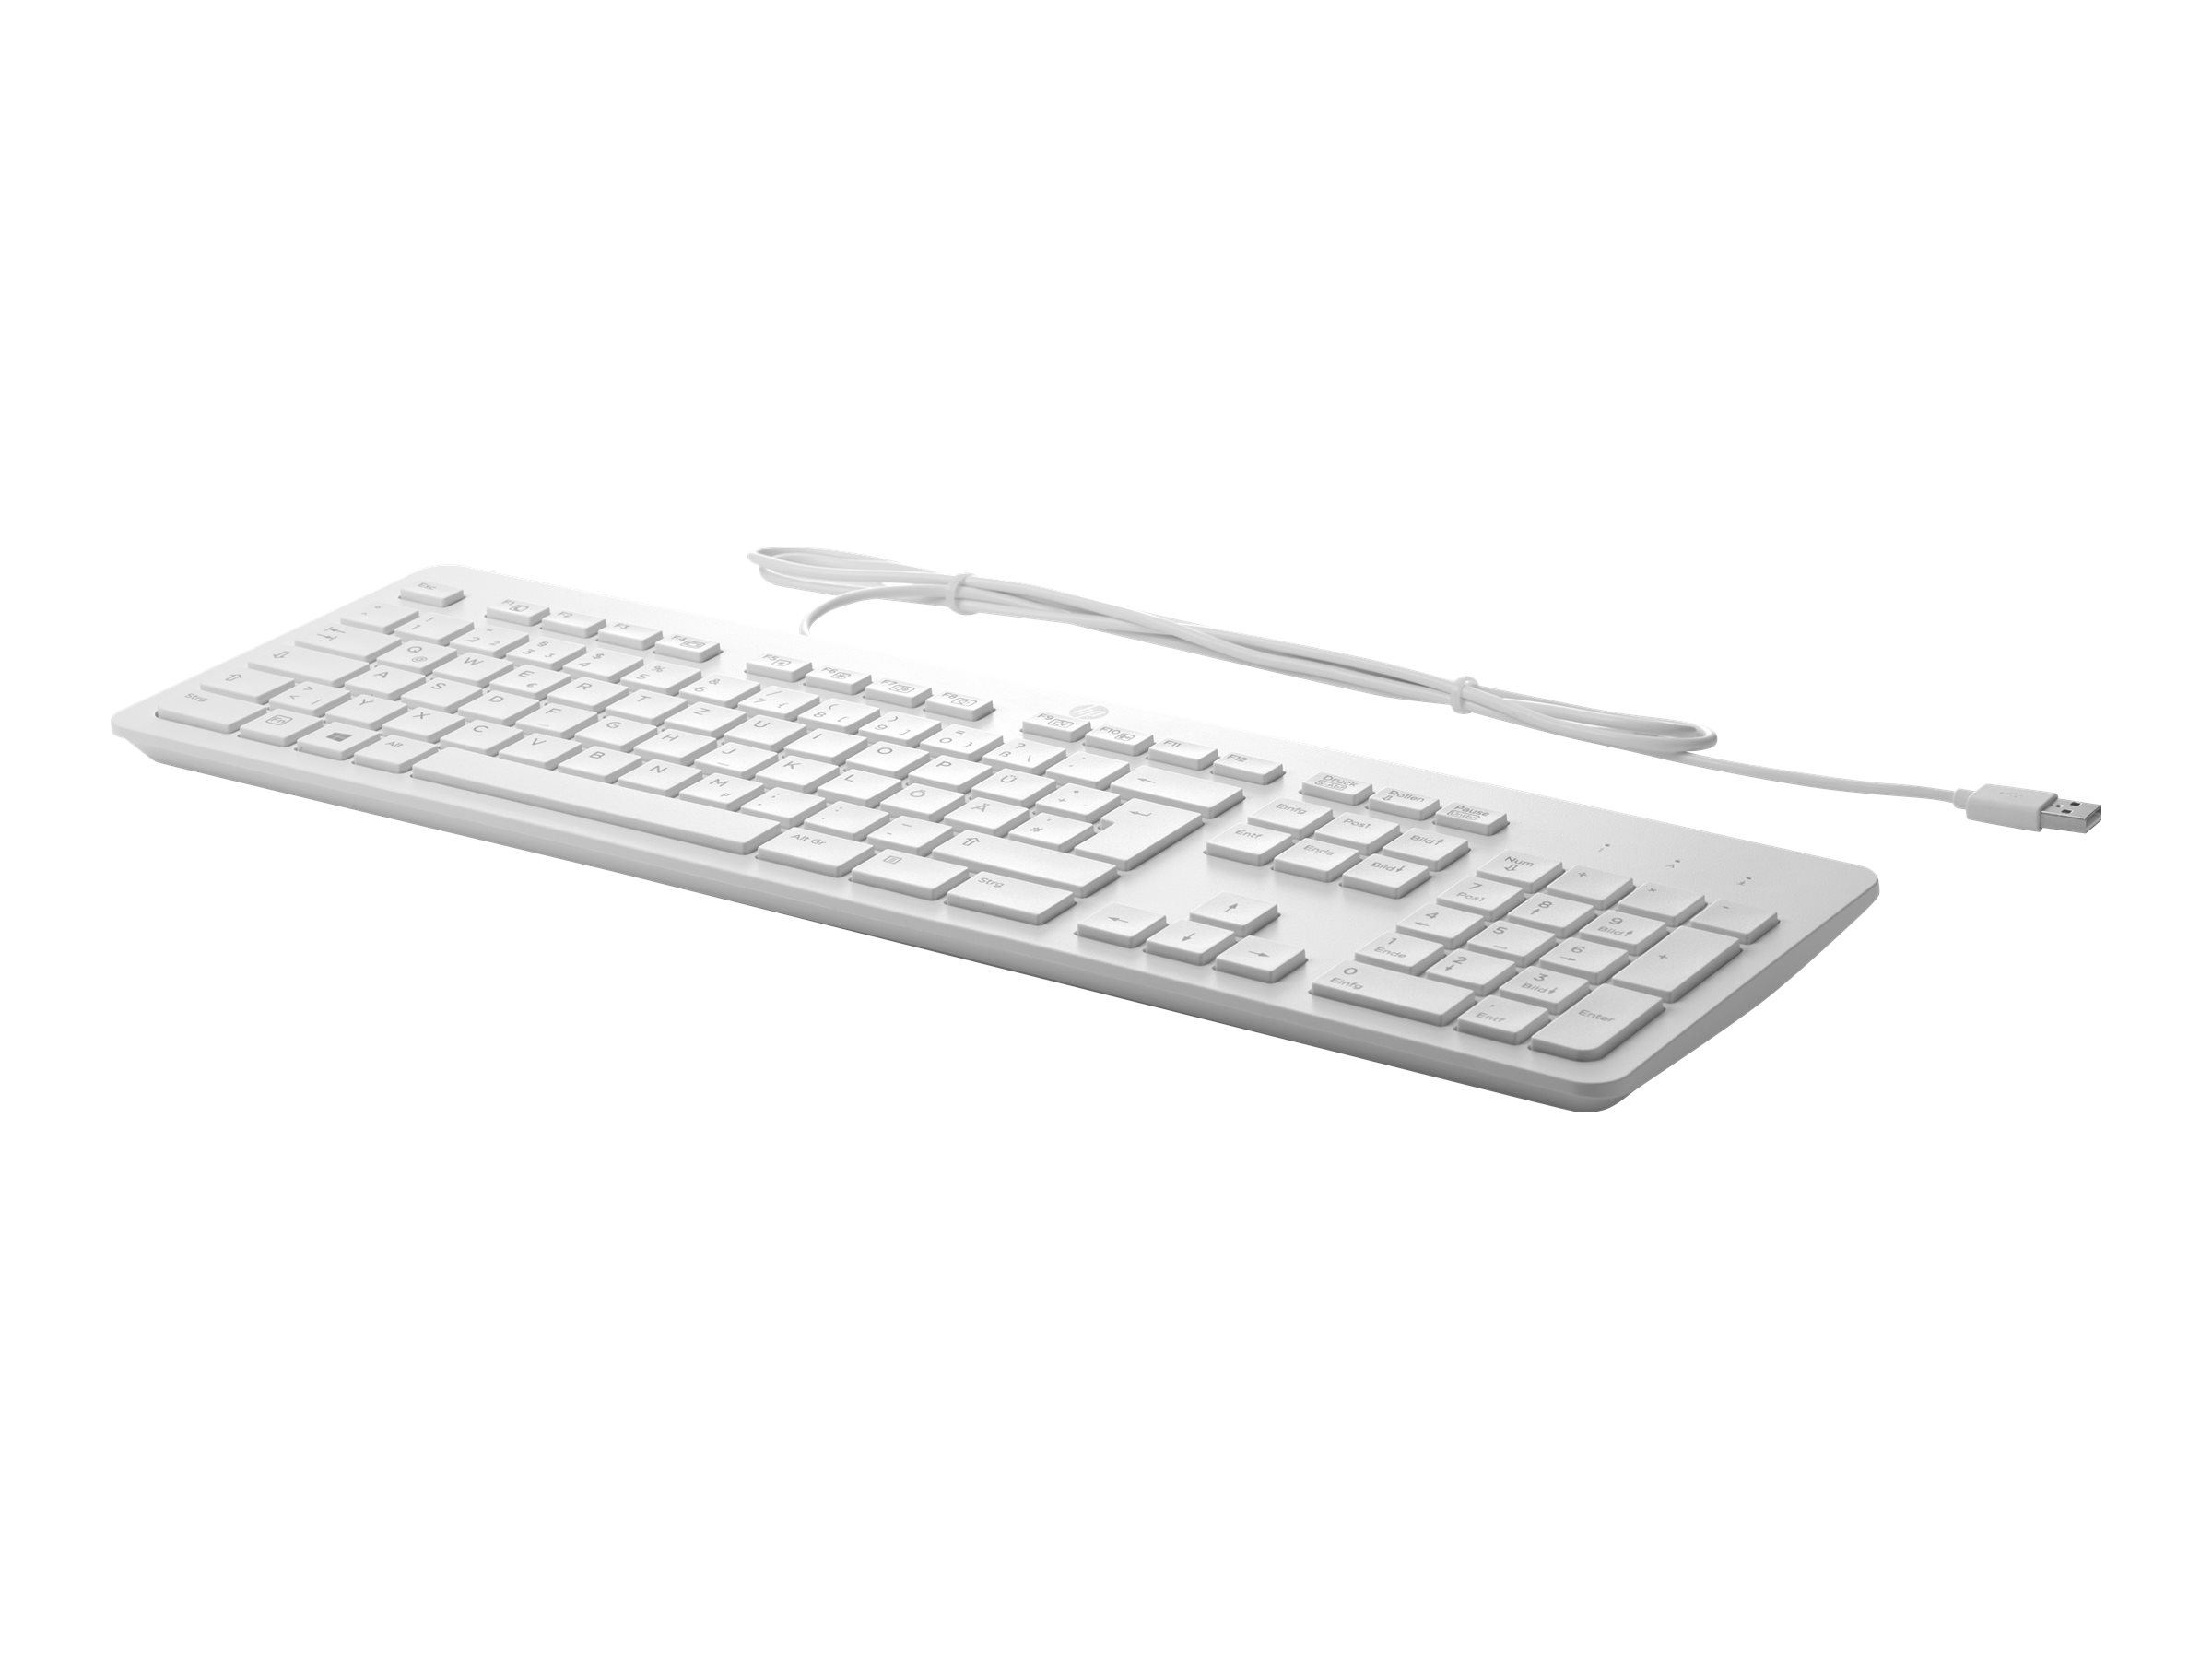 Hp business slim tastatur usb deutsch grau fuer elitedesk 800 g5 proone 400 g5 400 g6 440 g5 440 g6 600 g5 600 g6 workstation z1 g5 7381393 z9h49aa abd